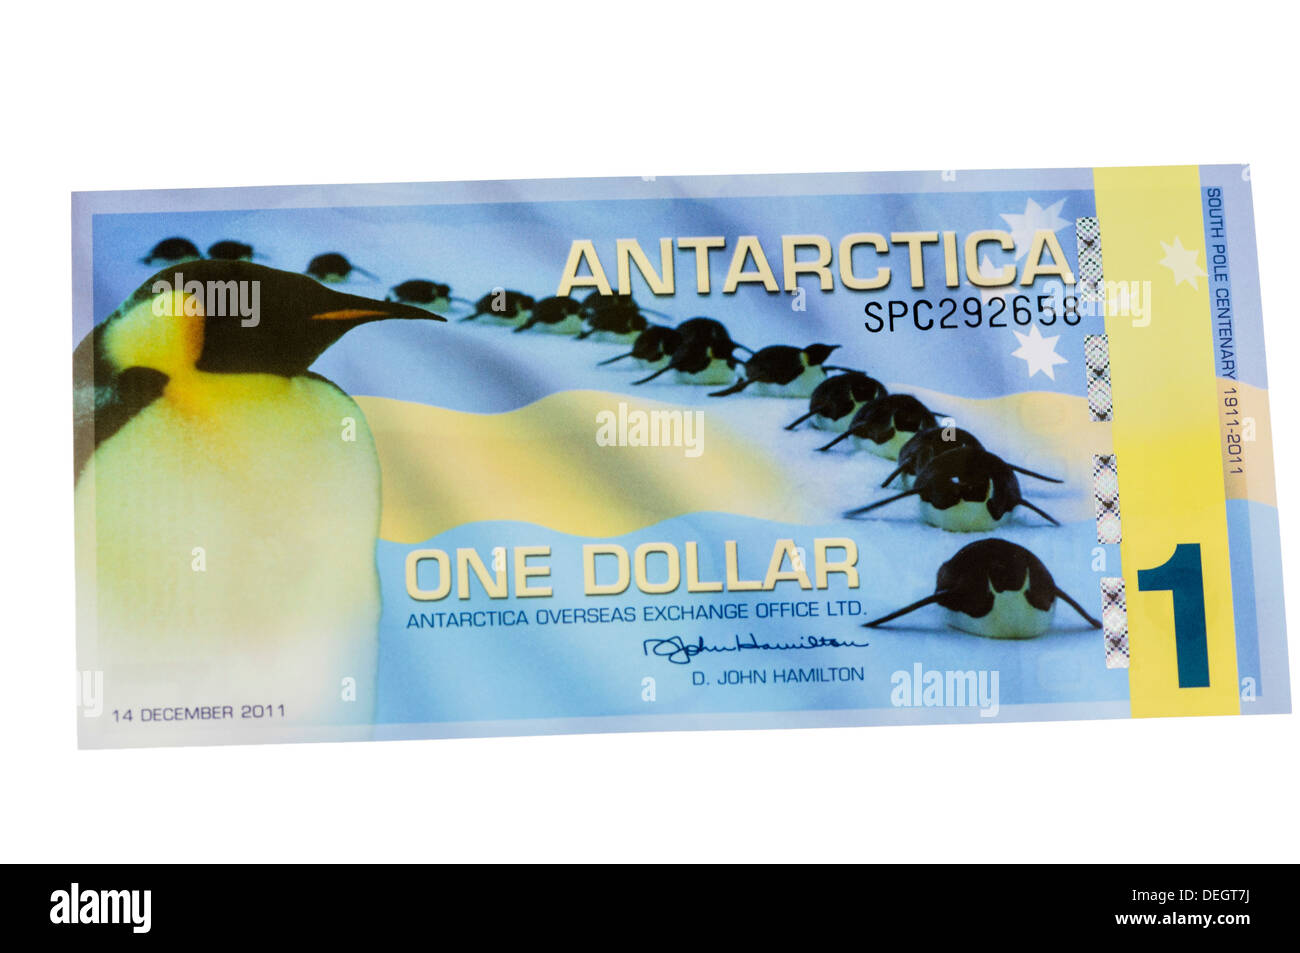 Antarcica one Dollar polymer (plastic) bank note - Stock Image